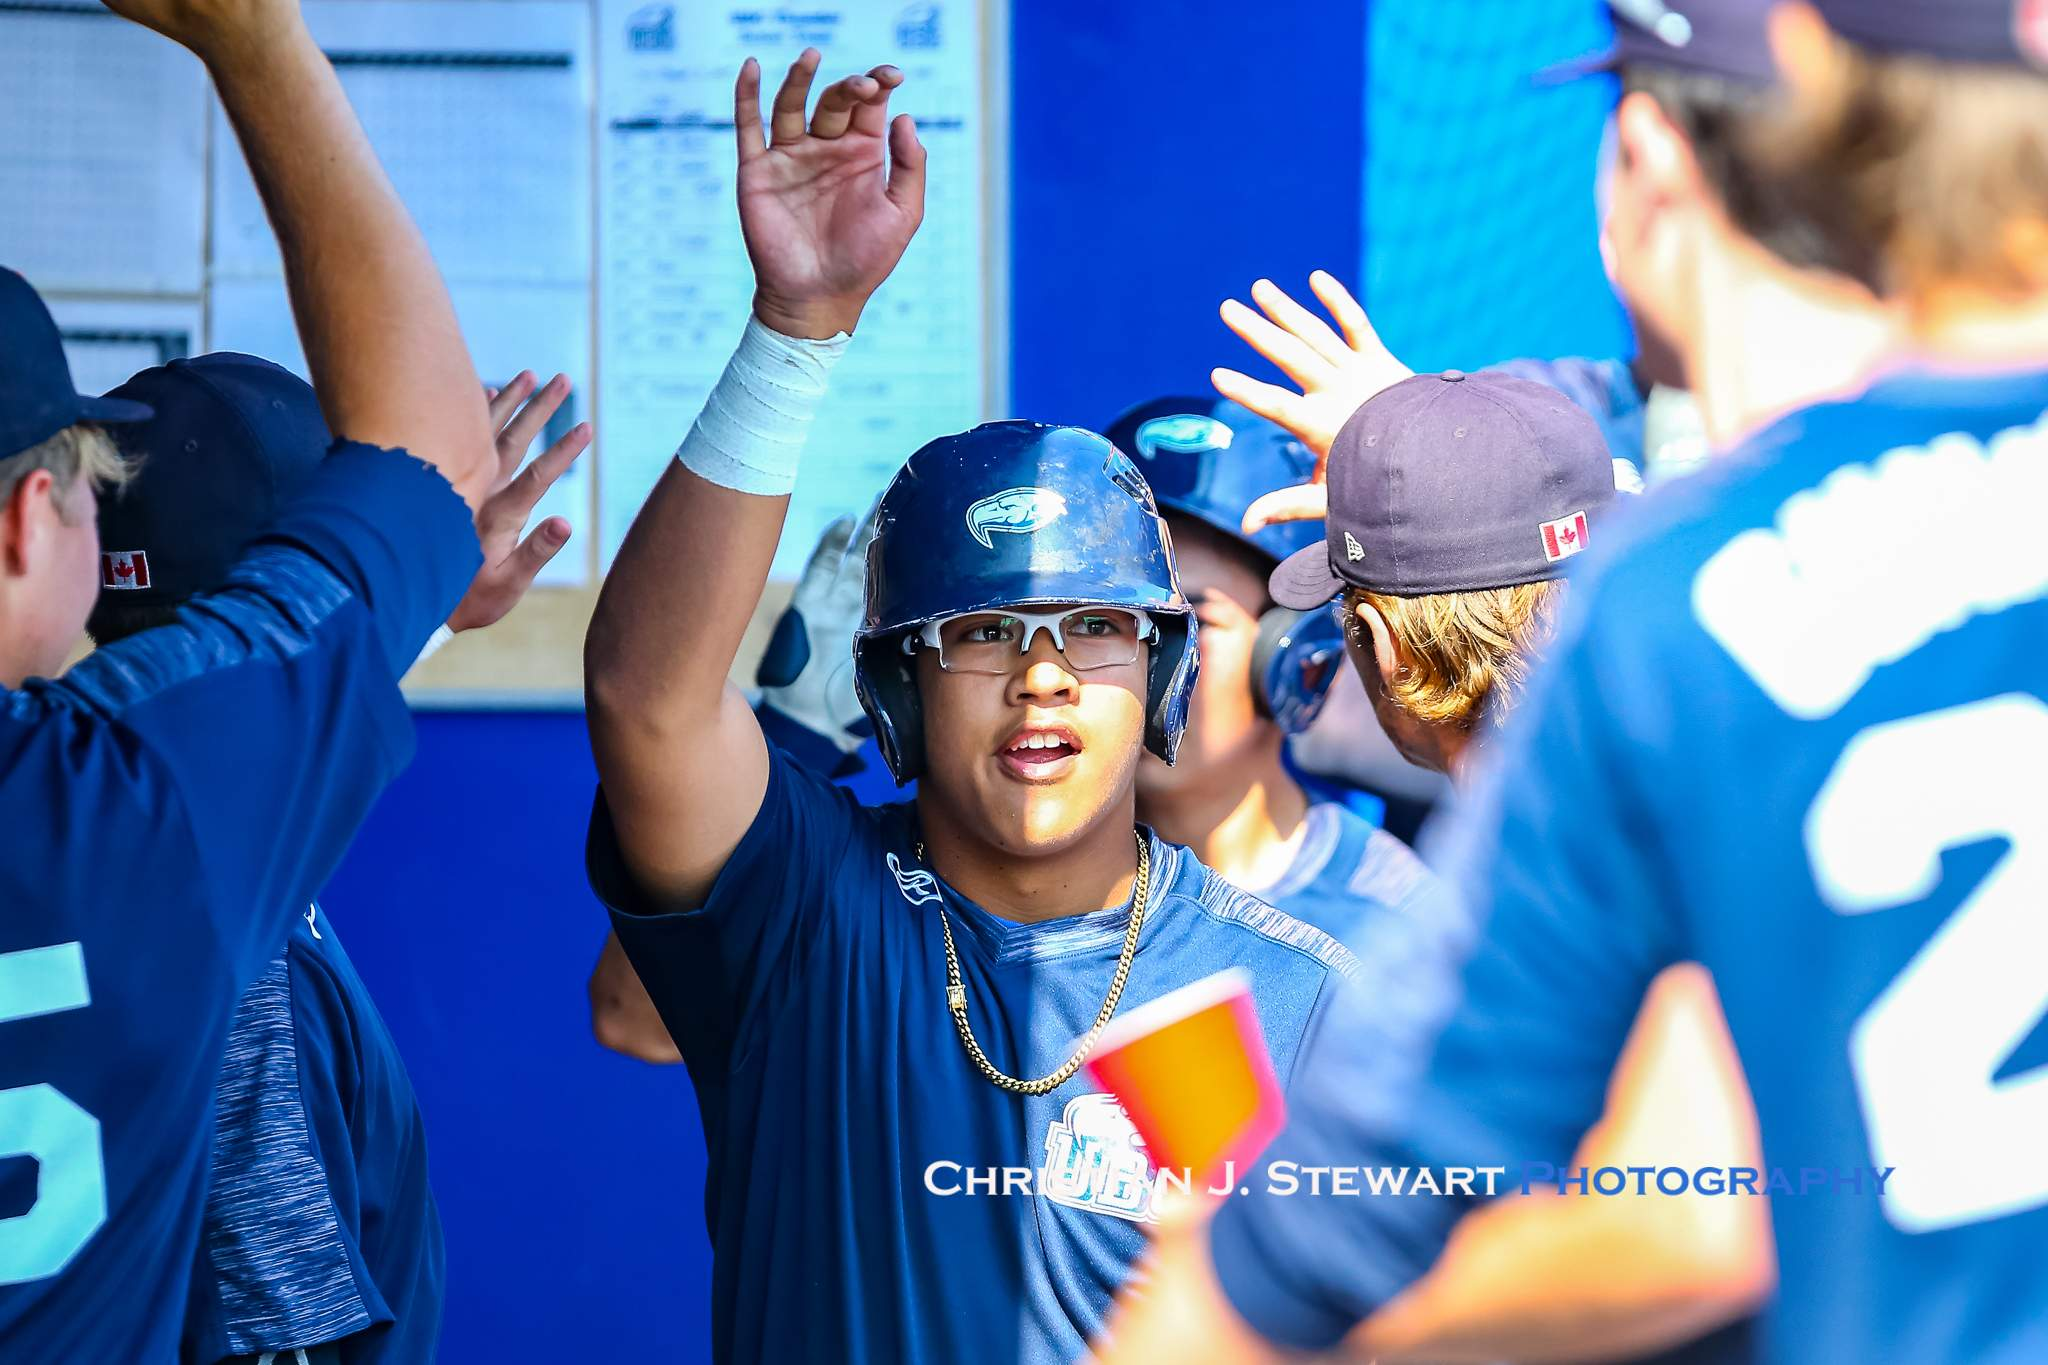 UBC's Vic Domingo gets high fives after scoring one of the Thunder's runs Sunday (Photo: Christian J. Stewart)